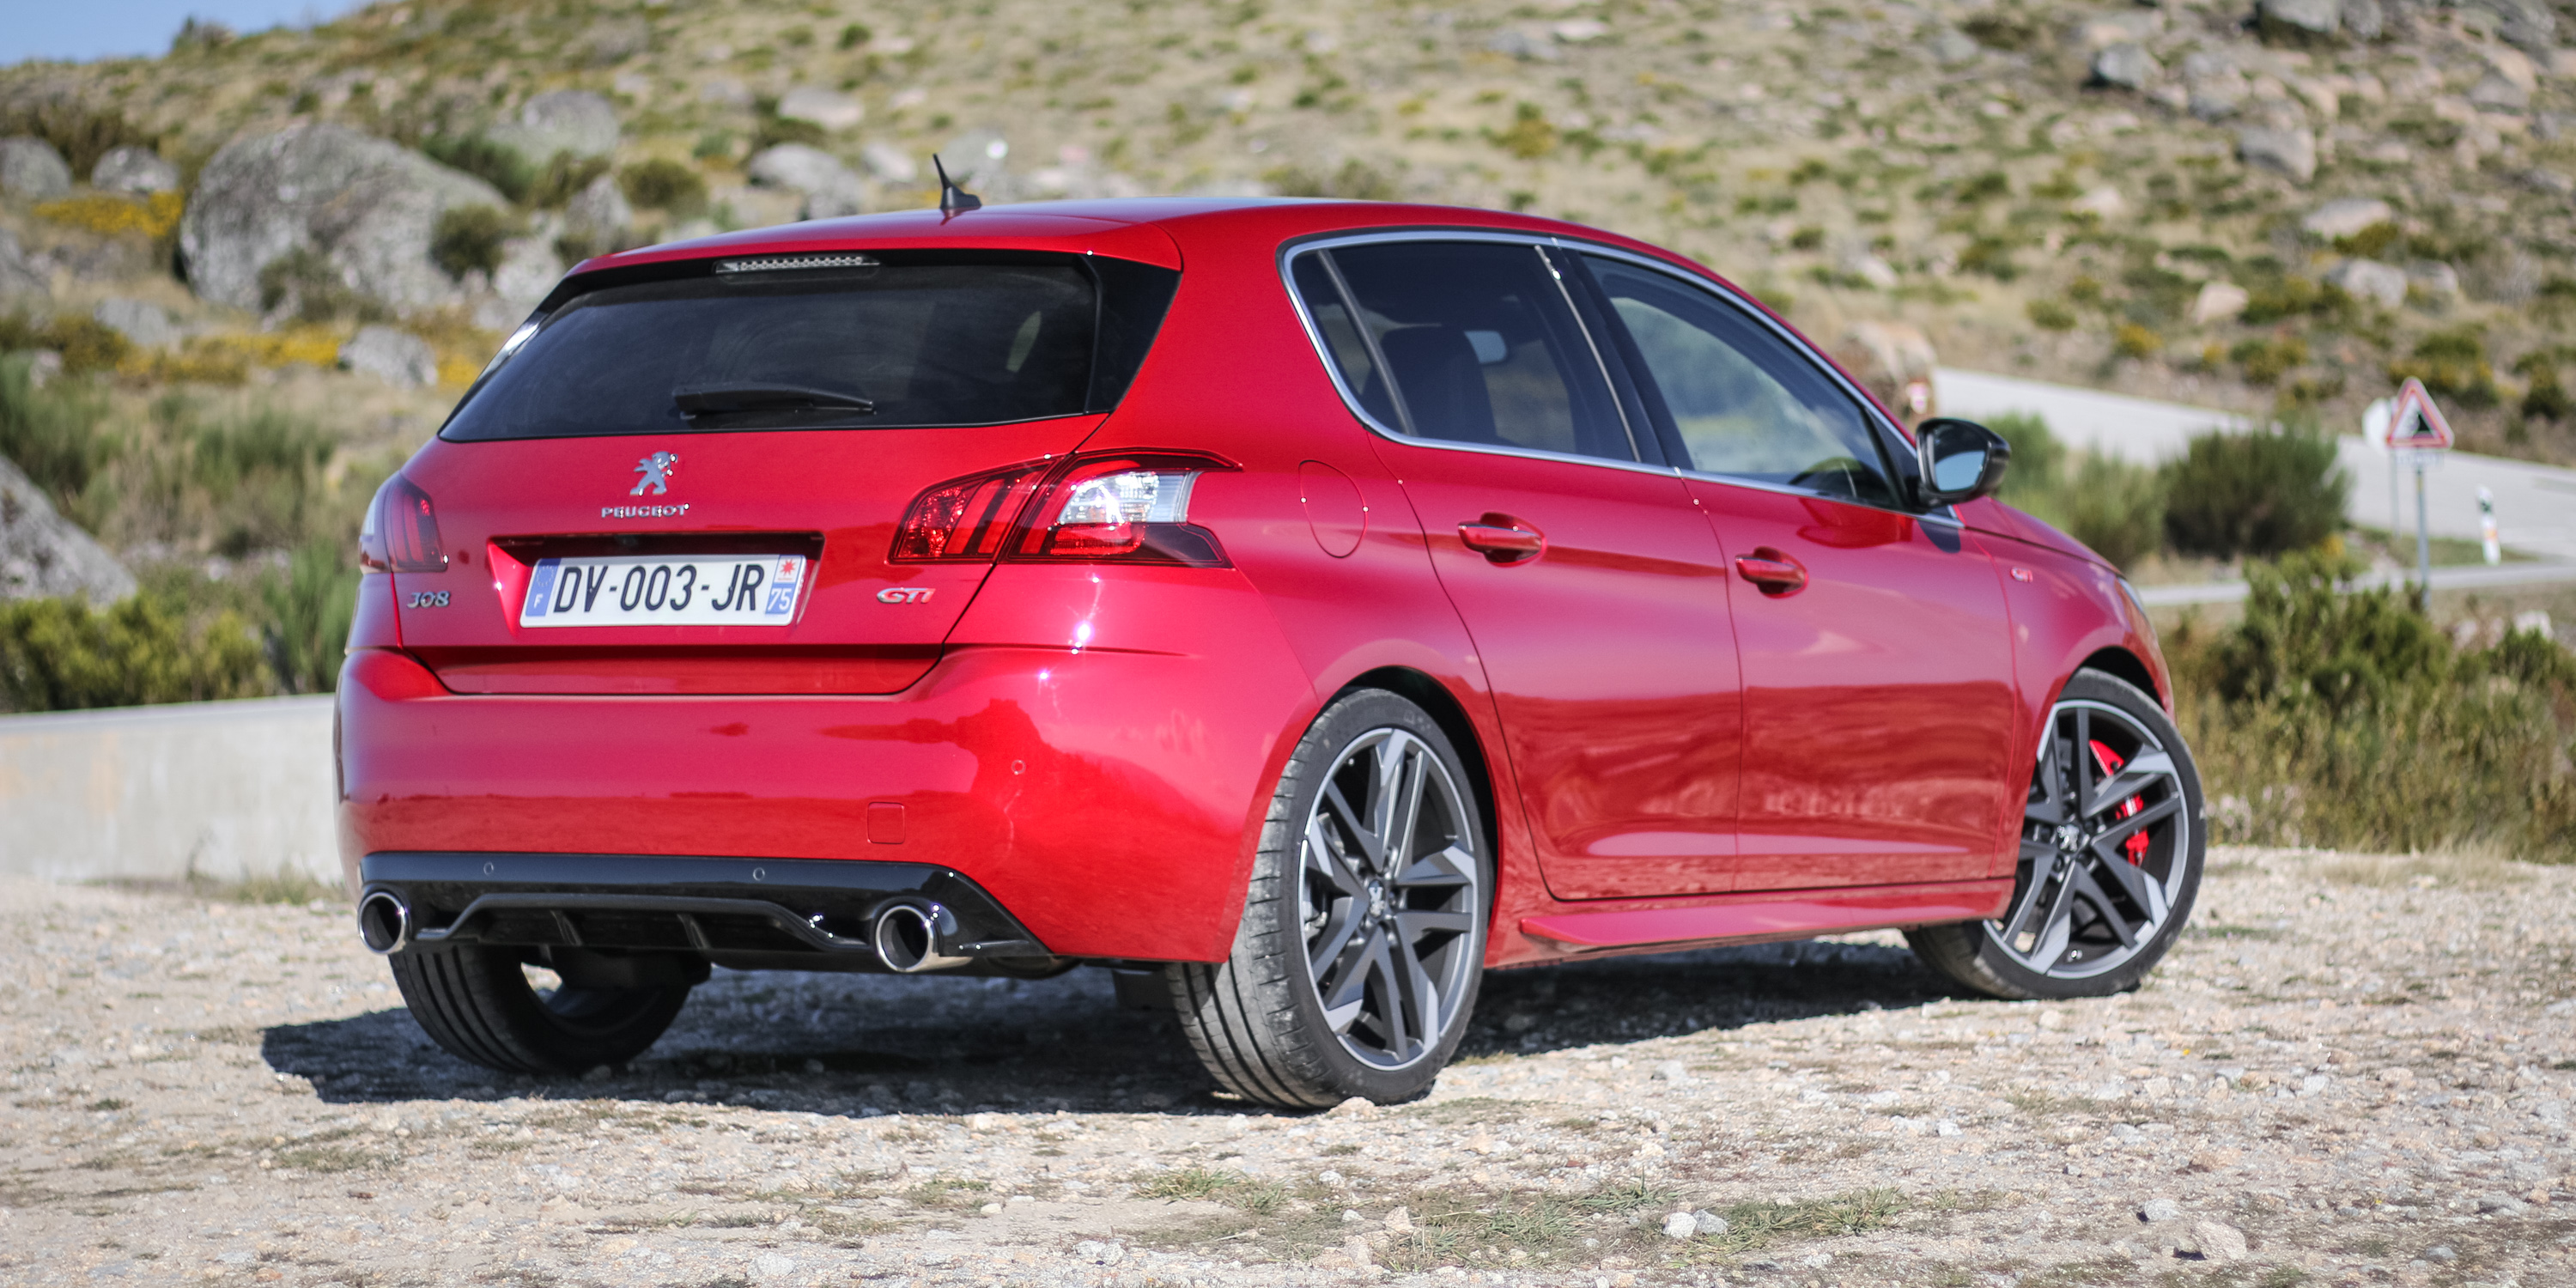 2016 Peugeot 308 Gti 270 Rear Side Body (View 7 of 15)